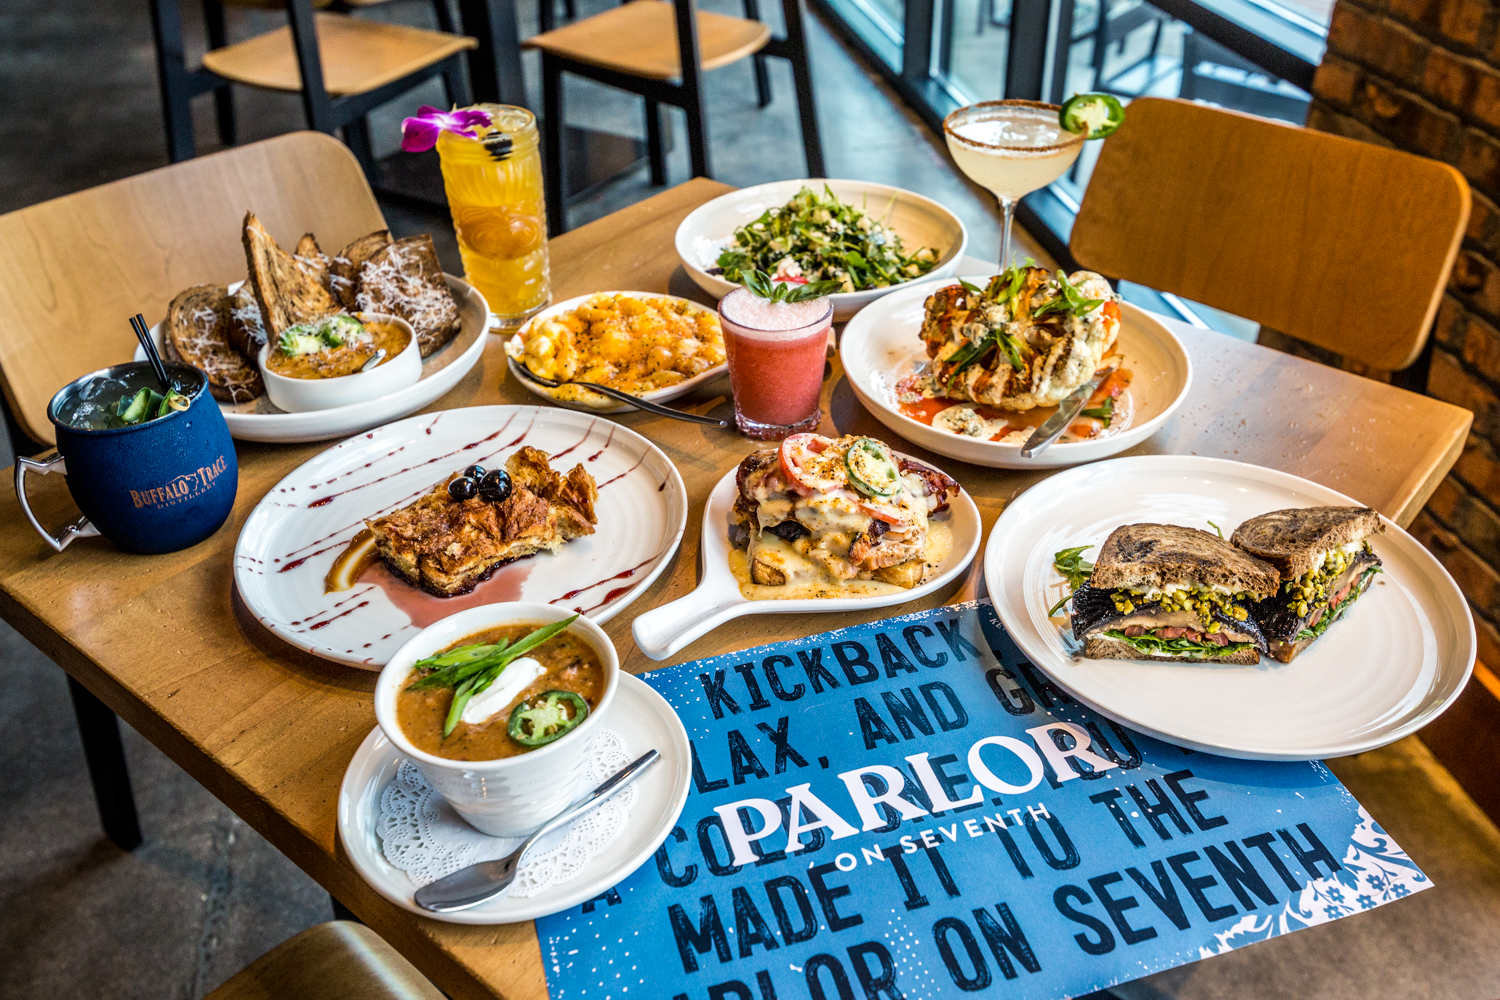 Parlor on Seventh, which is next door to Braxton Brewing Company in Covington, is inspired by a parlor from the neighborhood's past. A similar establishment once stood on the corner of 7th and Pike Streets not far from the current parlor's location. The menu pays homage to Cincinnati's German roots with a mix of contemporary German and Southern flavors. Their signature Parlor Spice blend is infused into many of the dishes, as well. ADDRESS: 43 W 7th Street (41011) / Image: Catherine Viox // Published: 10.10.19